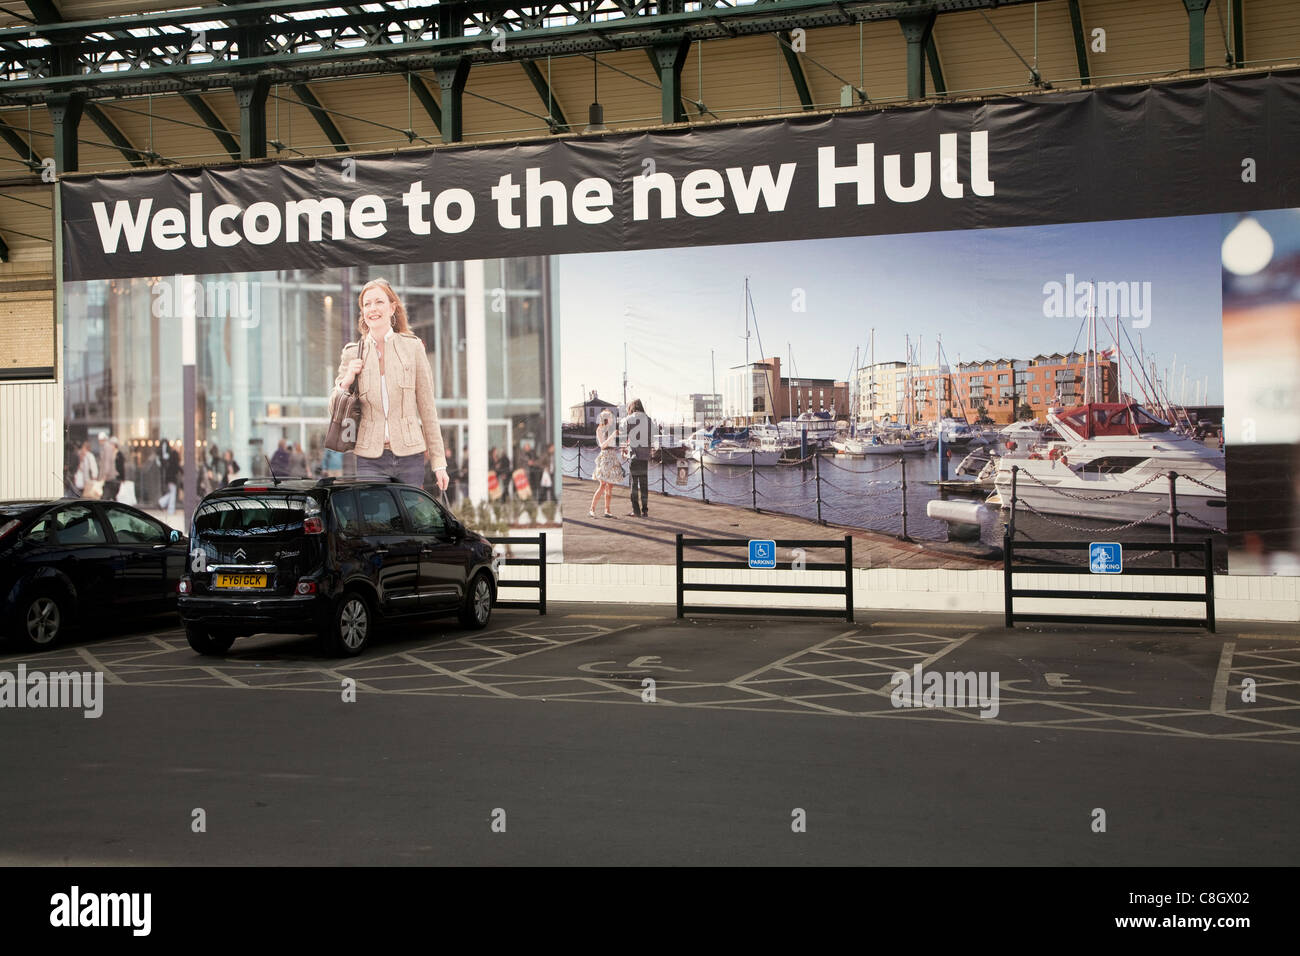 Urban re-branding adverts, Hull, Yorkshire, England 'Welcome to the new Hull' - Stock Image